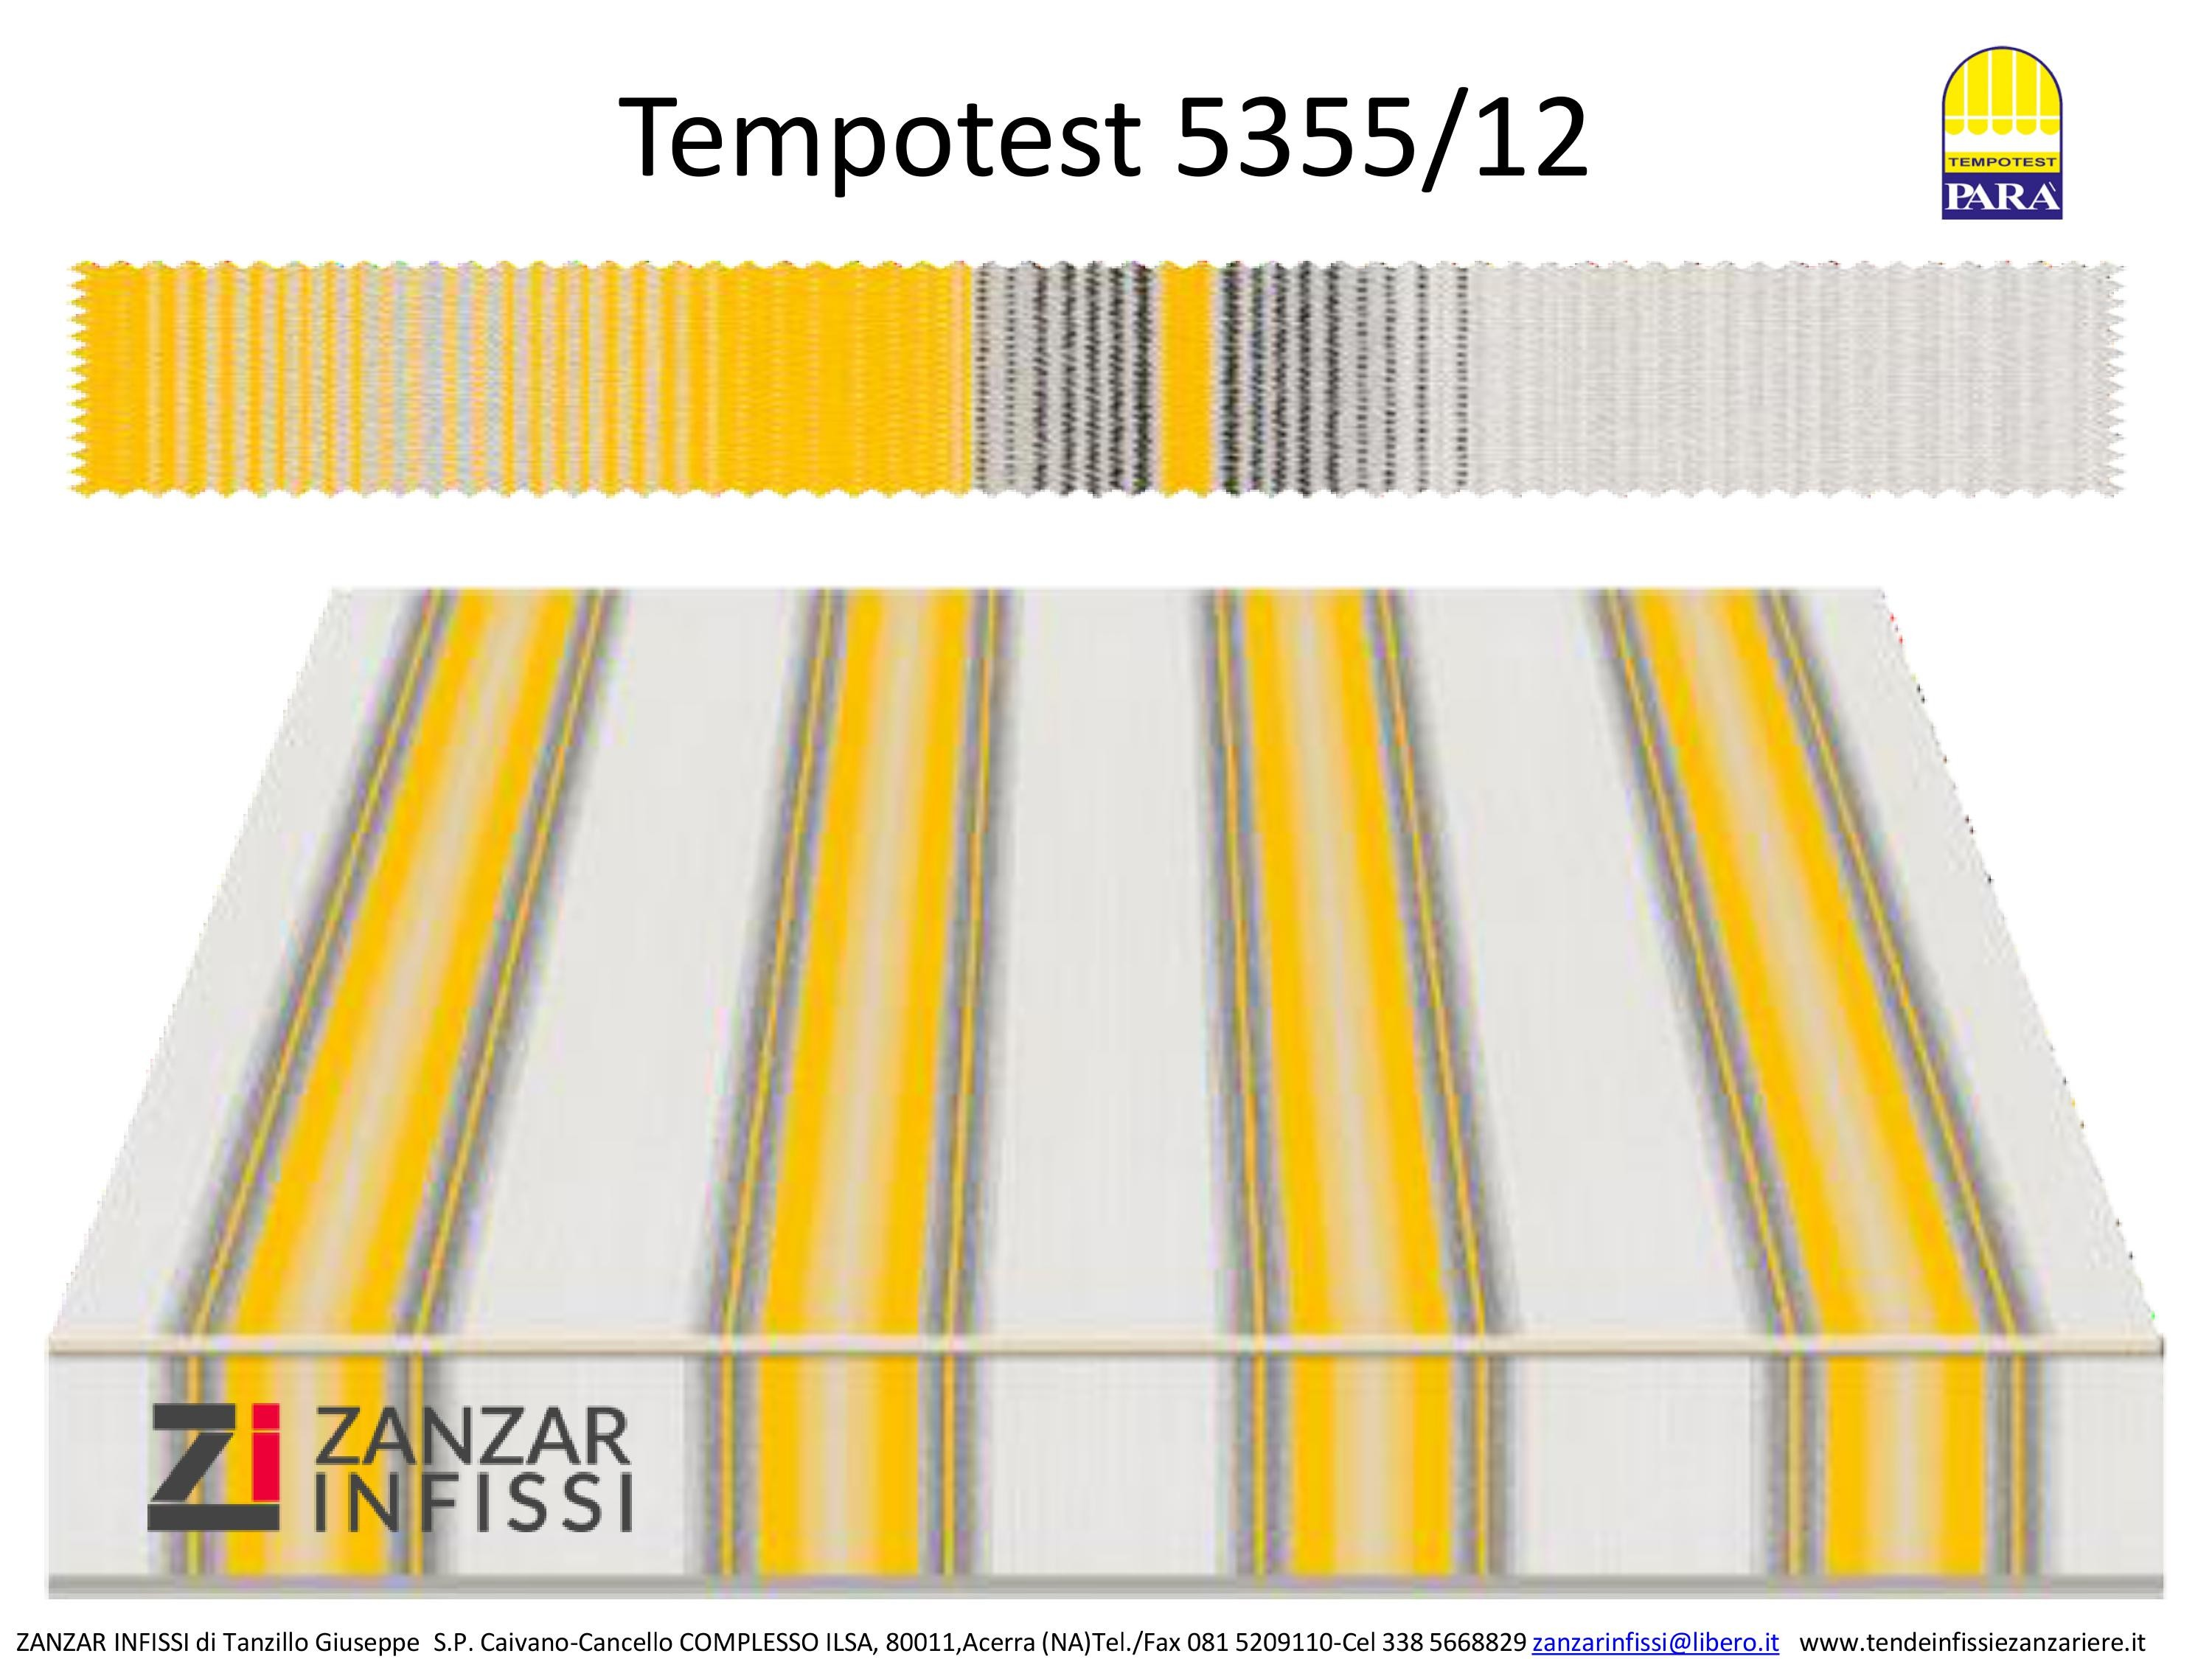 Tempotest 5355/12